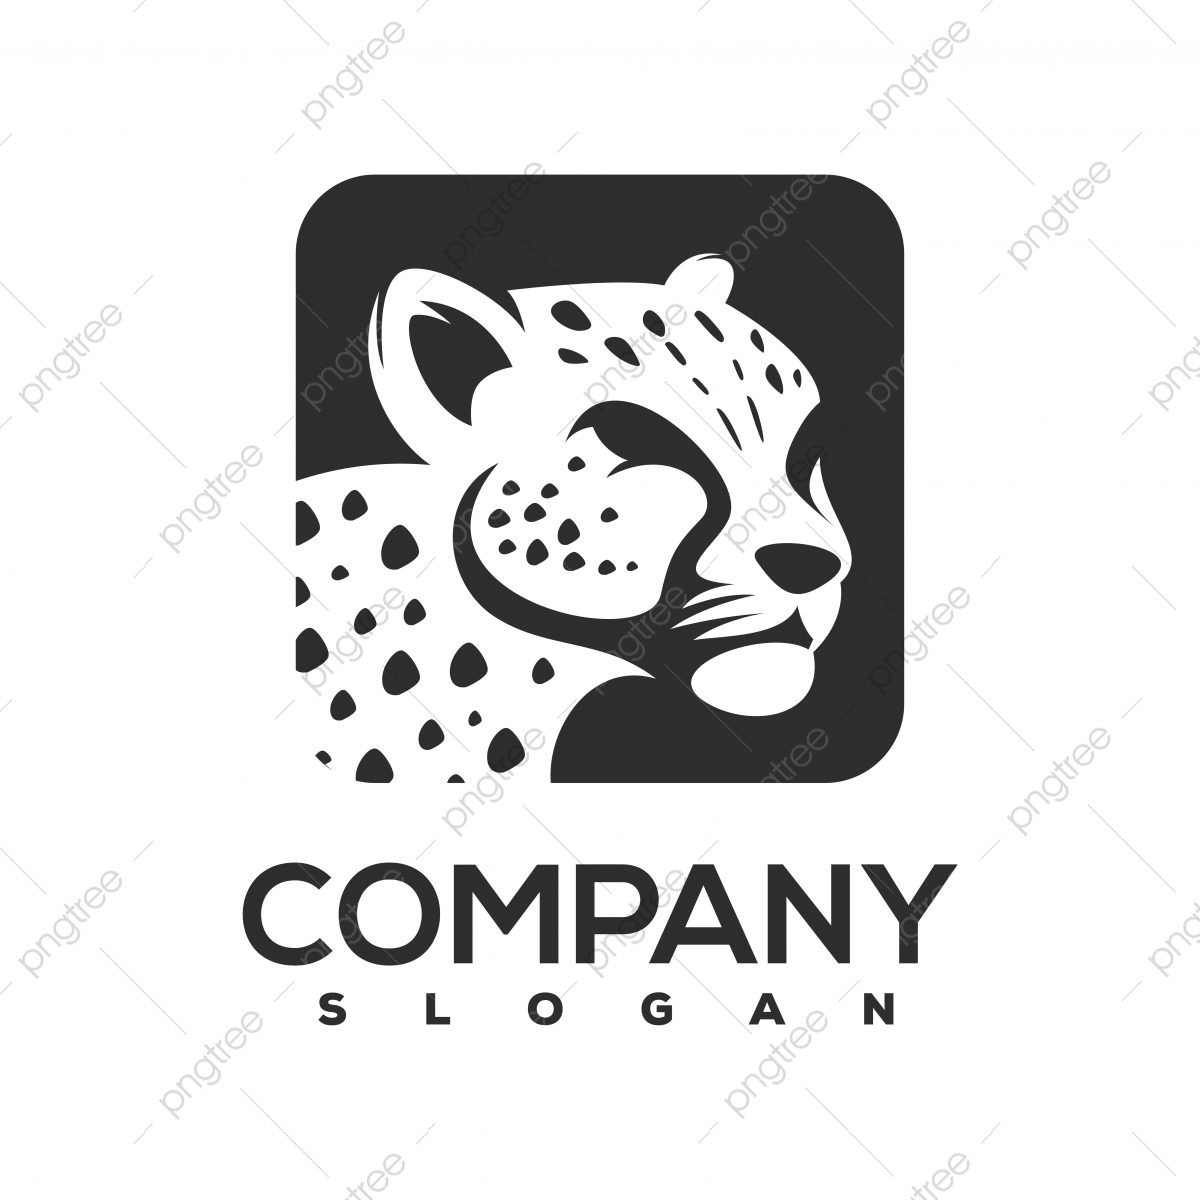 cheetah logo png vector psd and clipart with transparent background for free download pngtree https pngtree com freepng cheetah logo ready to use 4384999 html